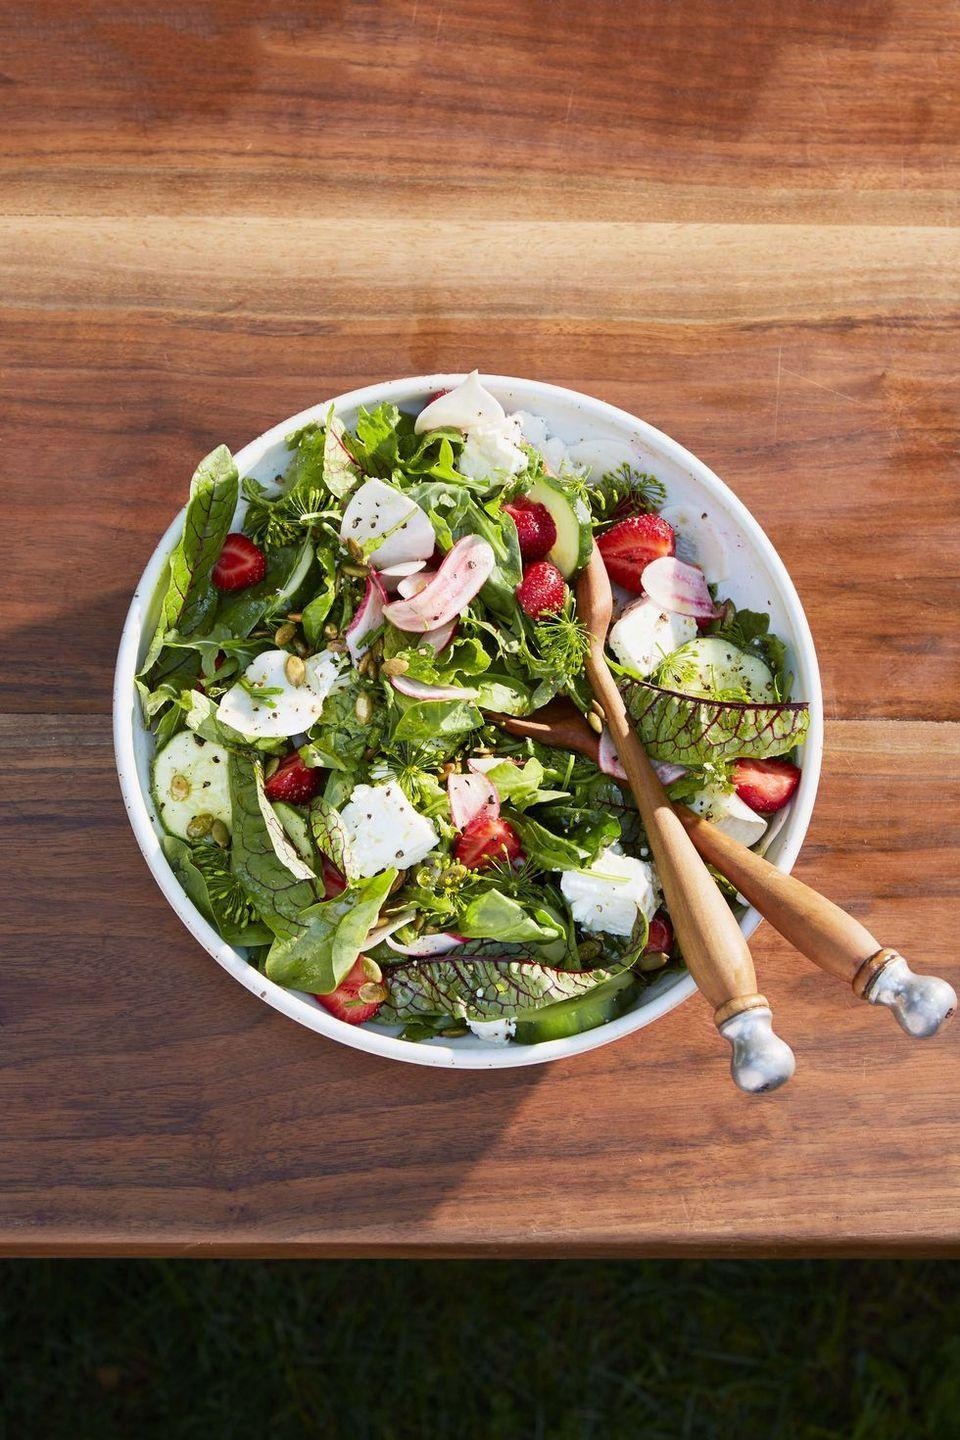 """<p>This spring salad gets a big flavor boost from the honey-lemon vinaigrette.</p><p><strong><a href=""""https://www.countryliving.com/food-drinks/a32353851/green-salad-with-turnips-strawberries-and-pepitas/"""" rel=""""nofollow noopener"""" target=""""_blank"""" data-ylk=""""slk:Get the recipe"""" class=""""link rapid-noclick-resp"""">Get the recipe</a>.</strong></p>"""